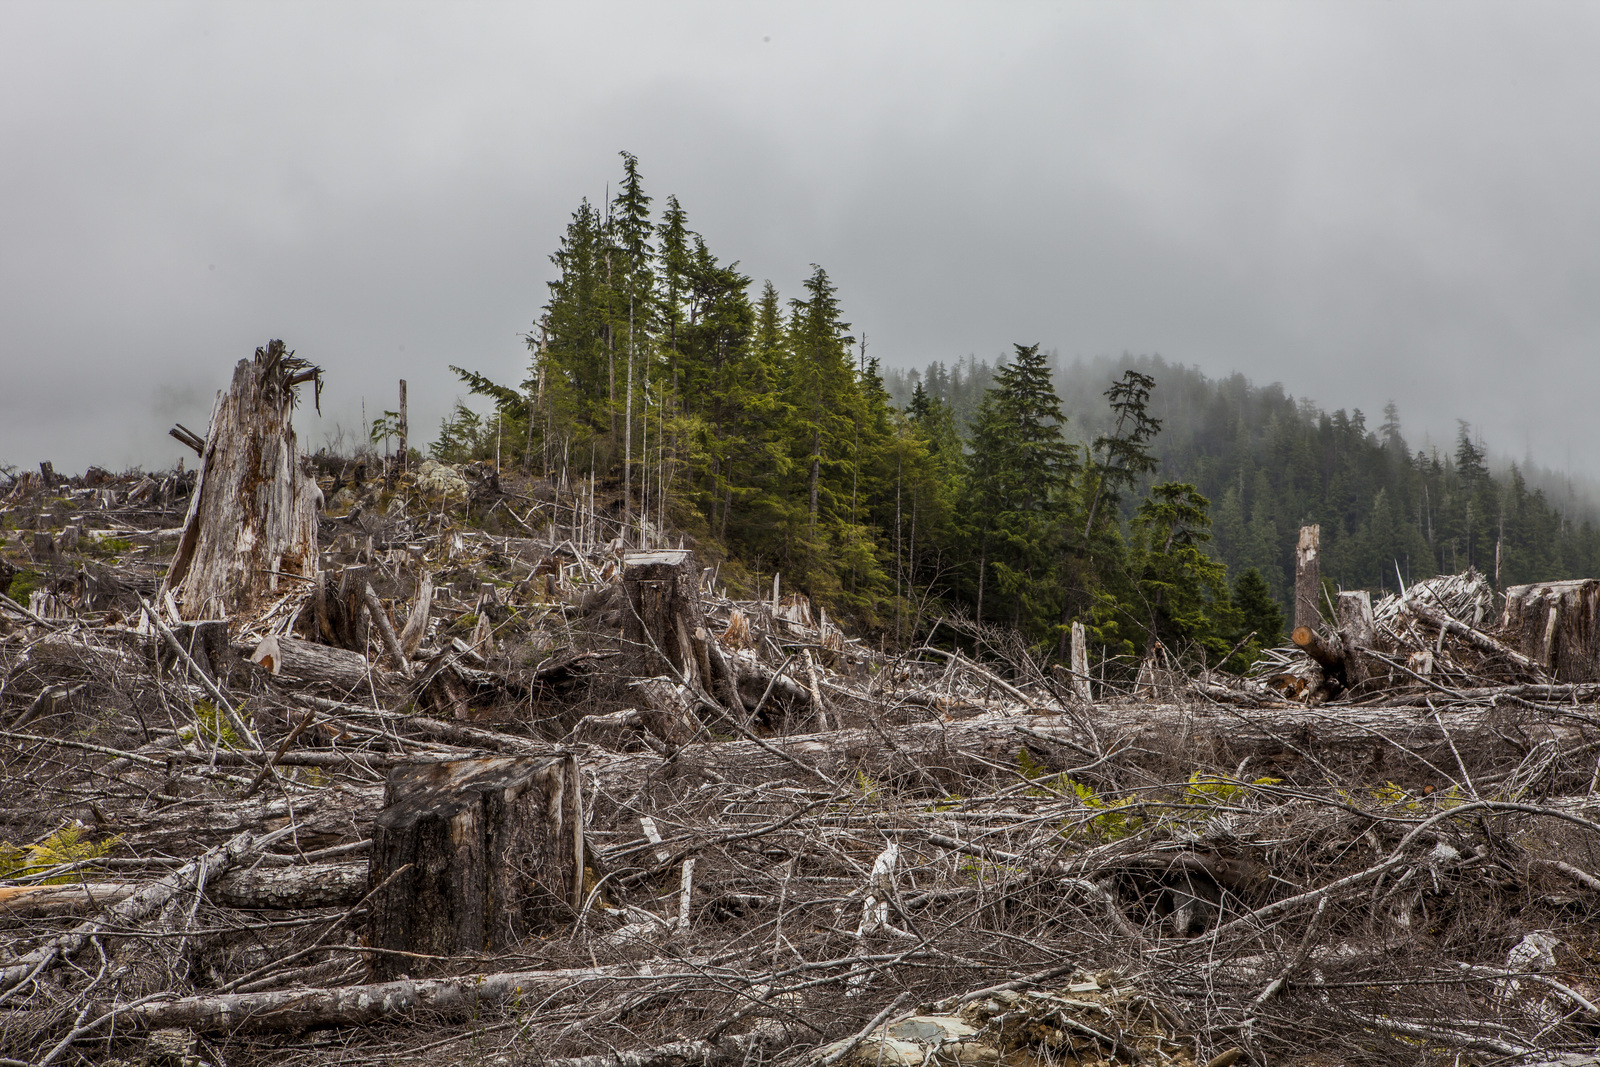 Clear-cutting of Tongass National Forest at Natzuhini River on Prince of Wales Island, Alaska, in 2013. Photo by Erika Nortemann/TNC